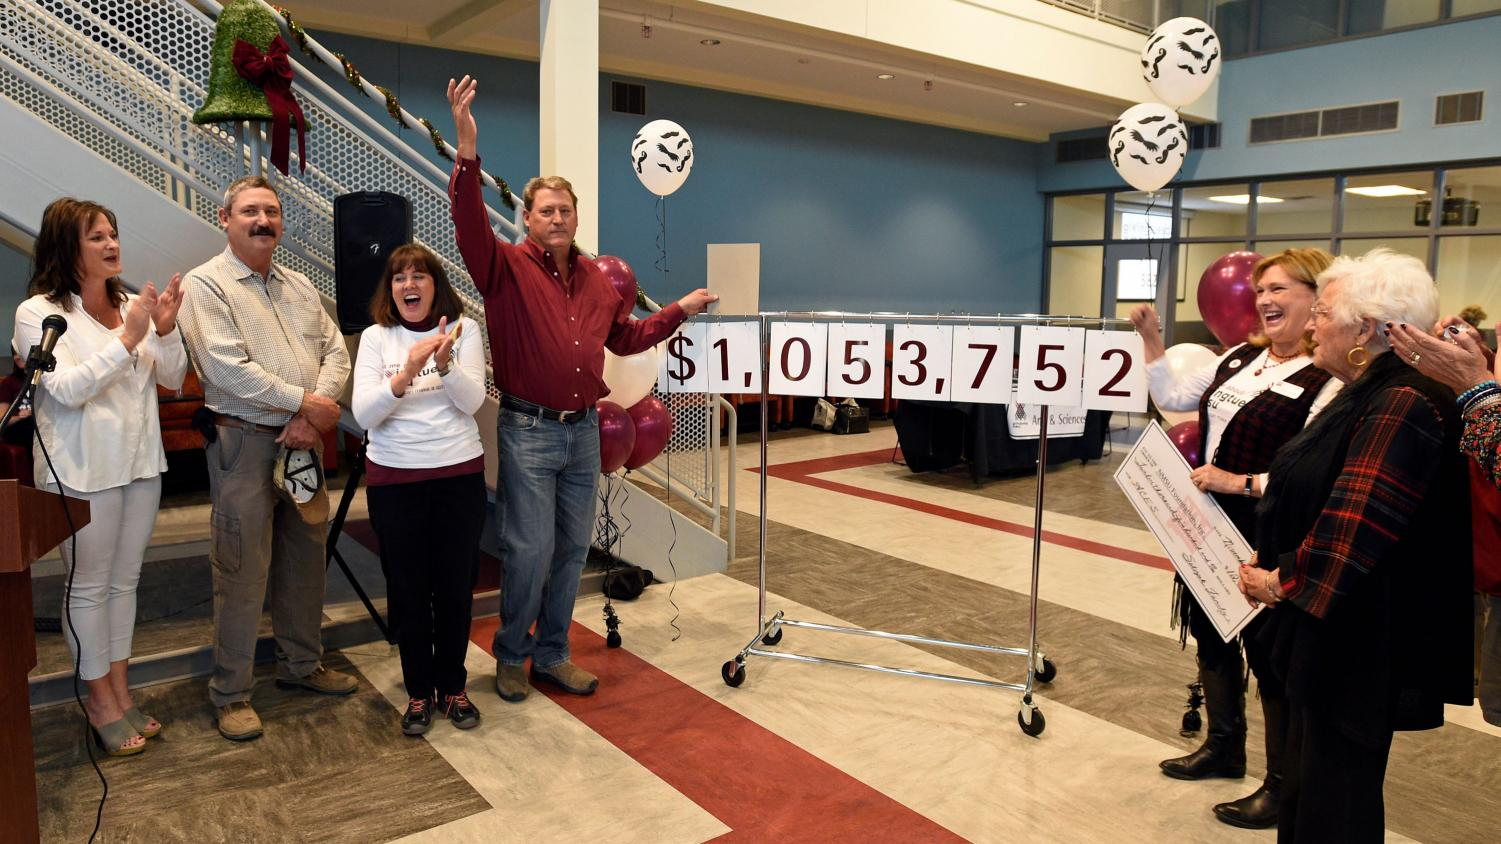 NMSU celebrated Giving Tuesday, Nov. 27. The university raised over $2 million in donations. (Photo courtesy NMSU)